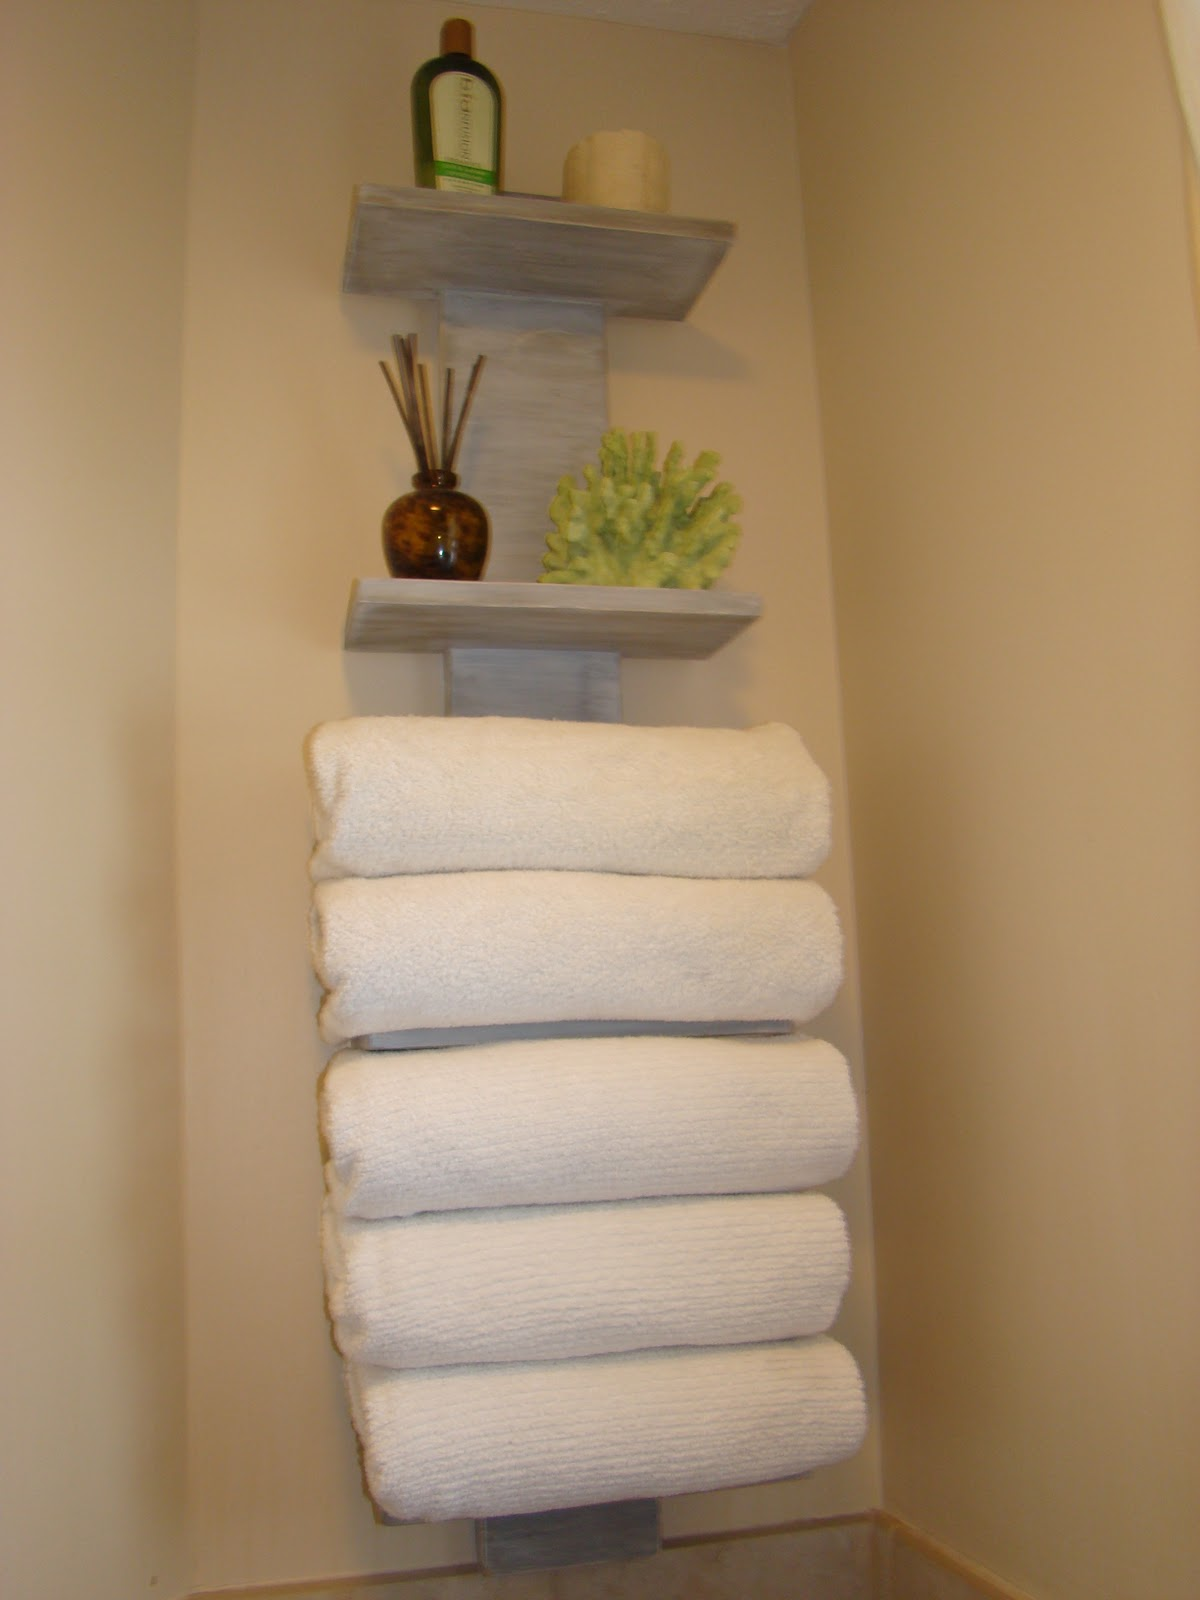 my bath finally gets some towel storage